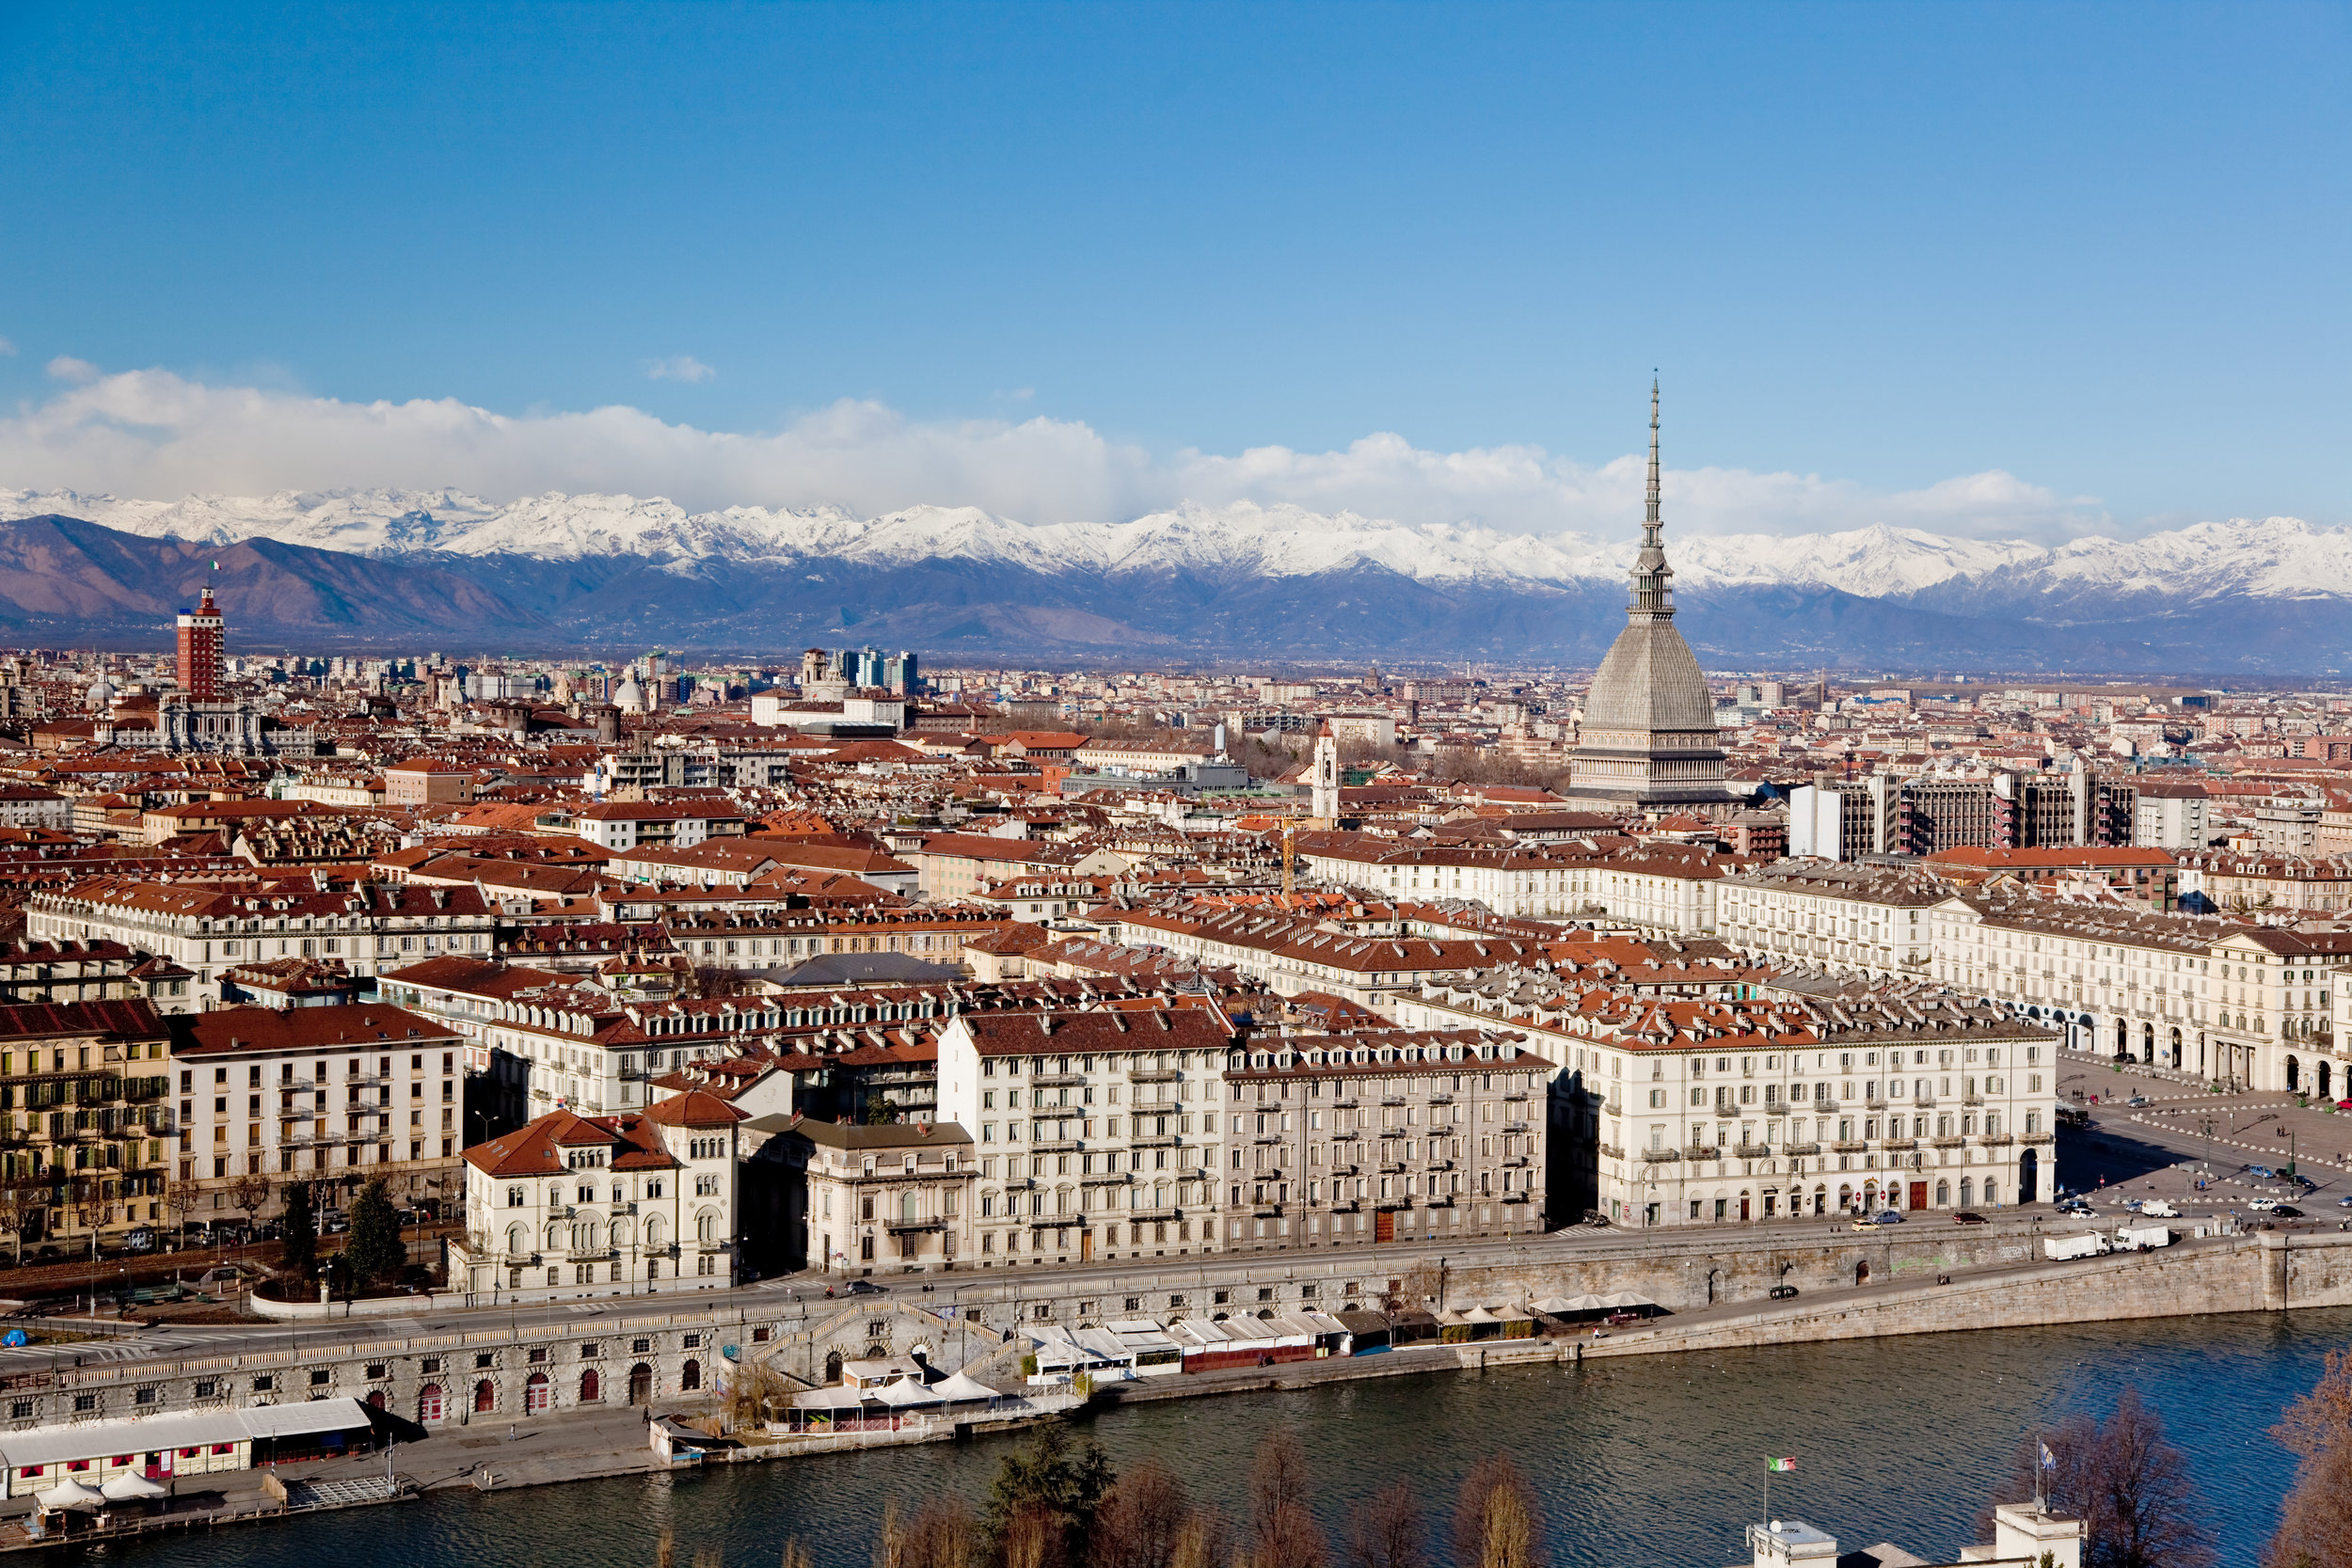 Turin panoramic view